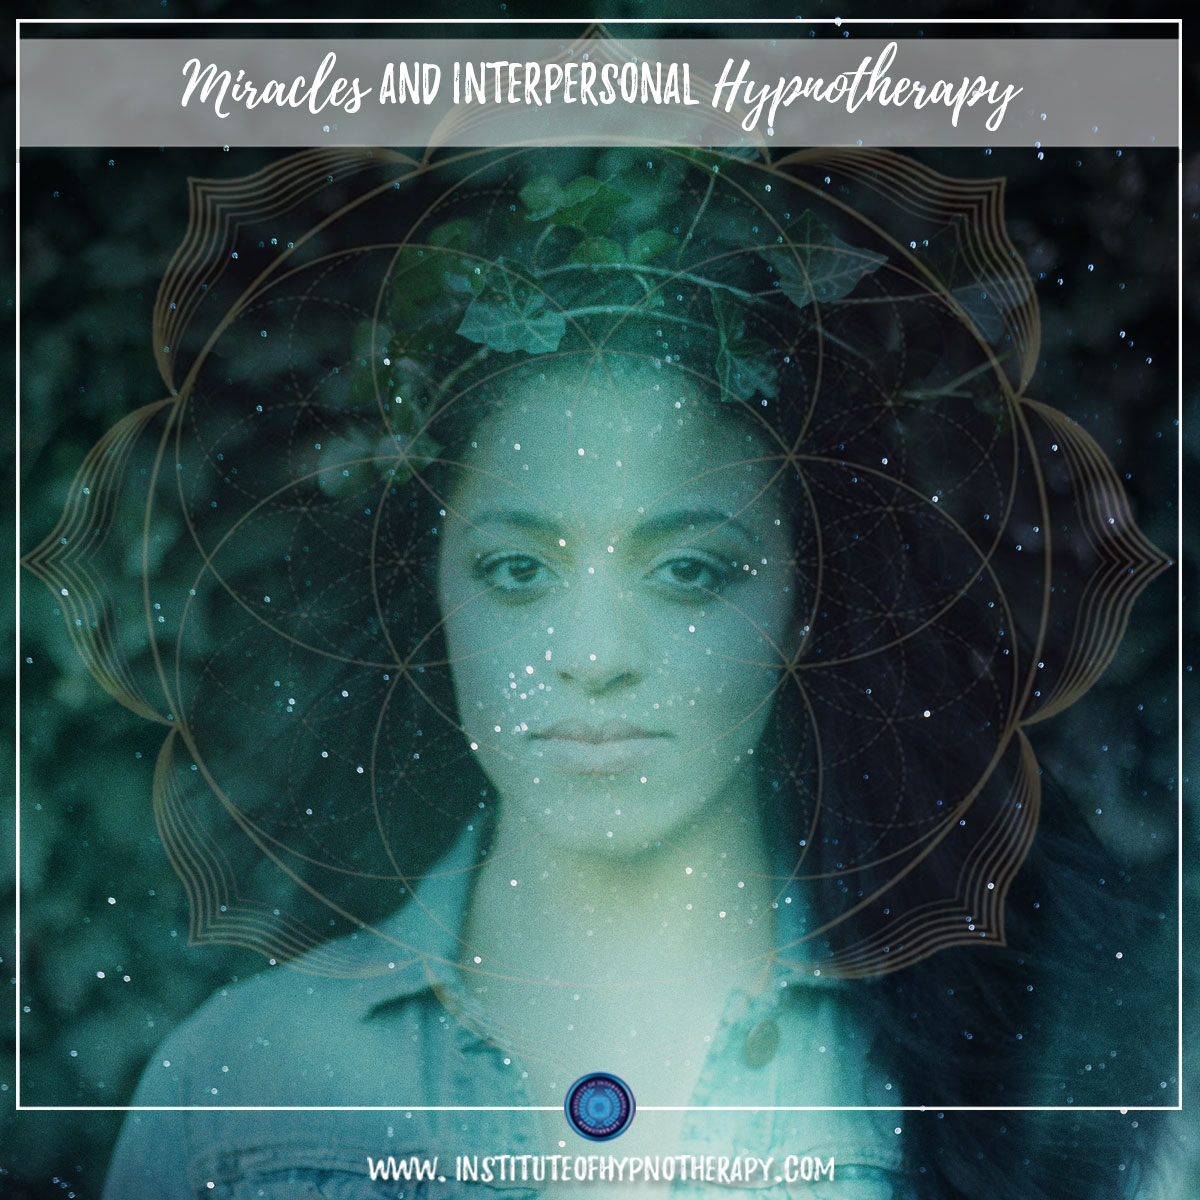 Miracles and Interpersonal Hypnotherapy